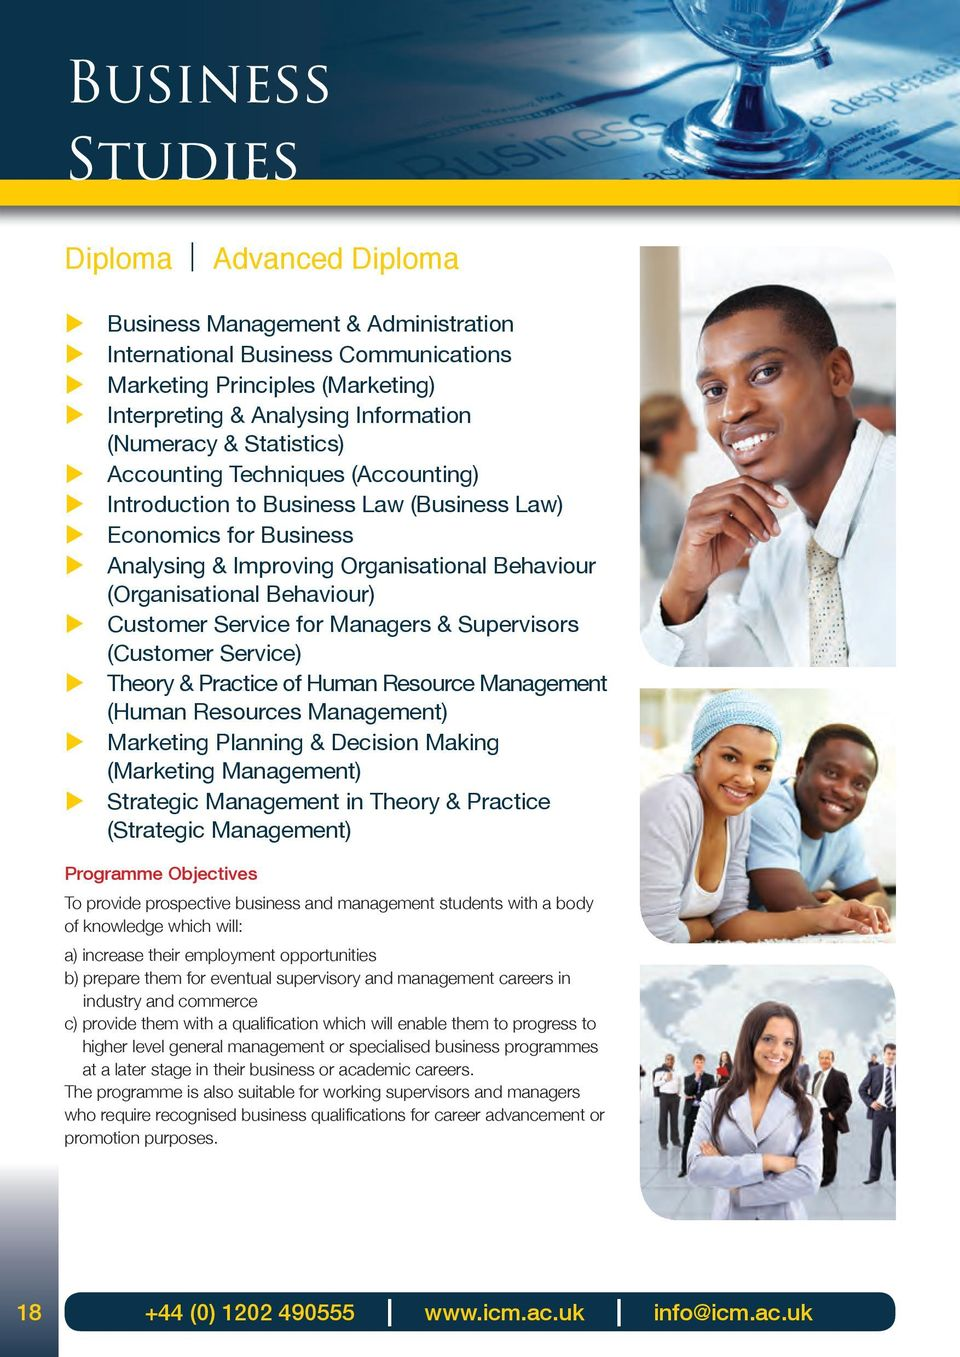 Managers & Spervisors (Cstomer Service) Theory & Practice of Hman Resorce Management (Hman Resorces Management) Marketing Planning & Decision Making (Marketing Management) Strategic Management in